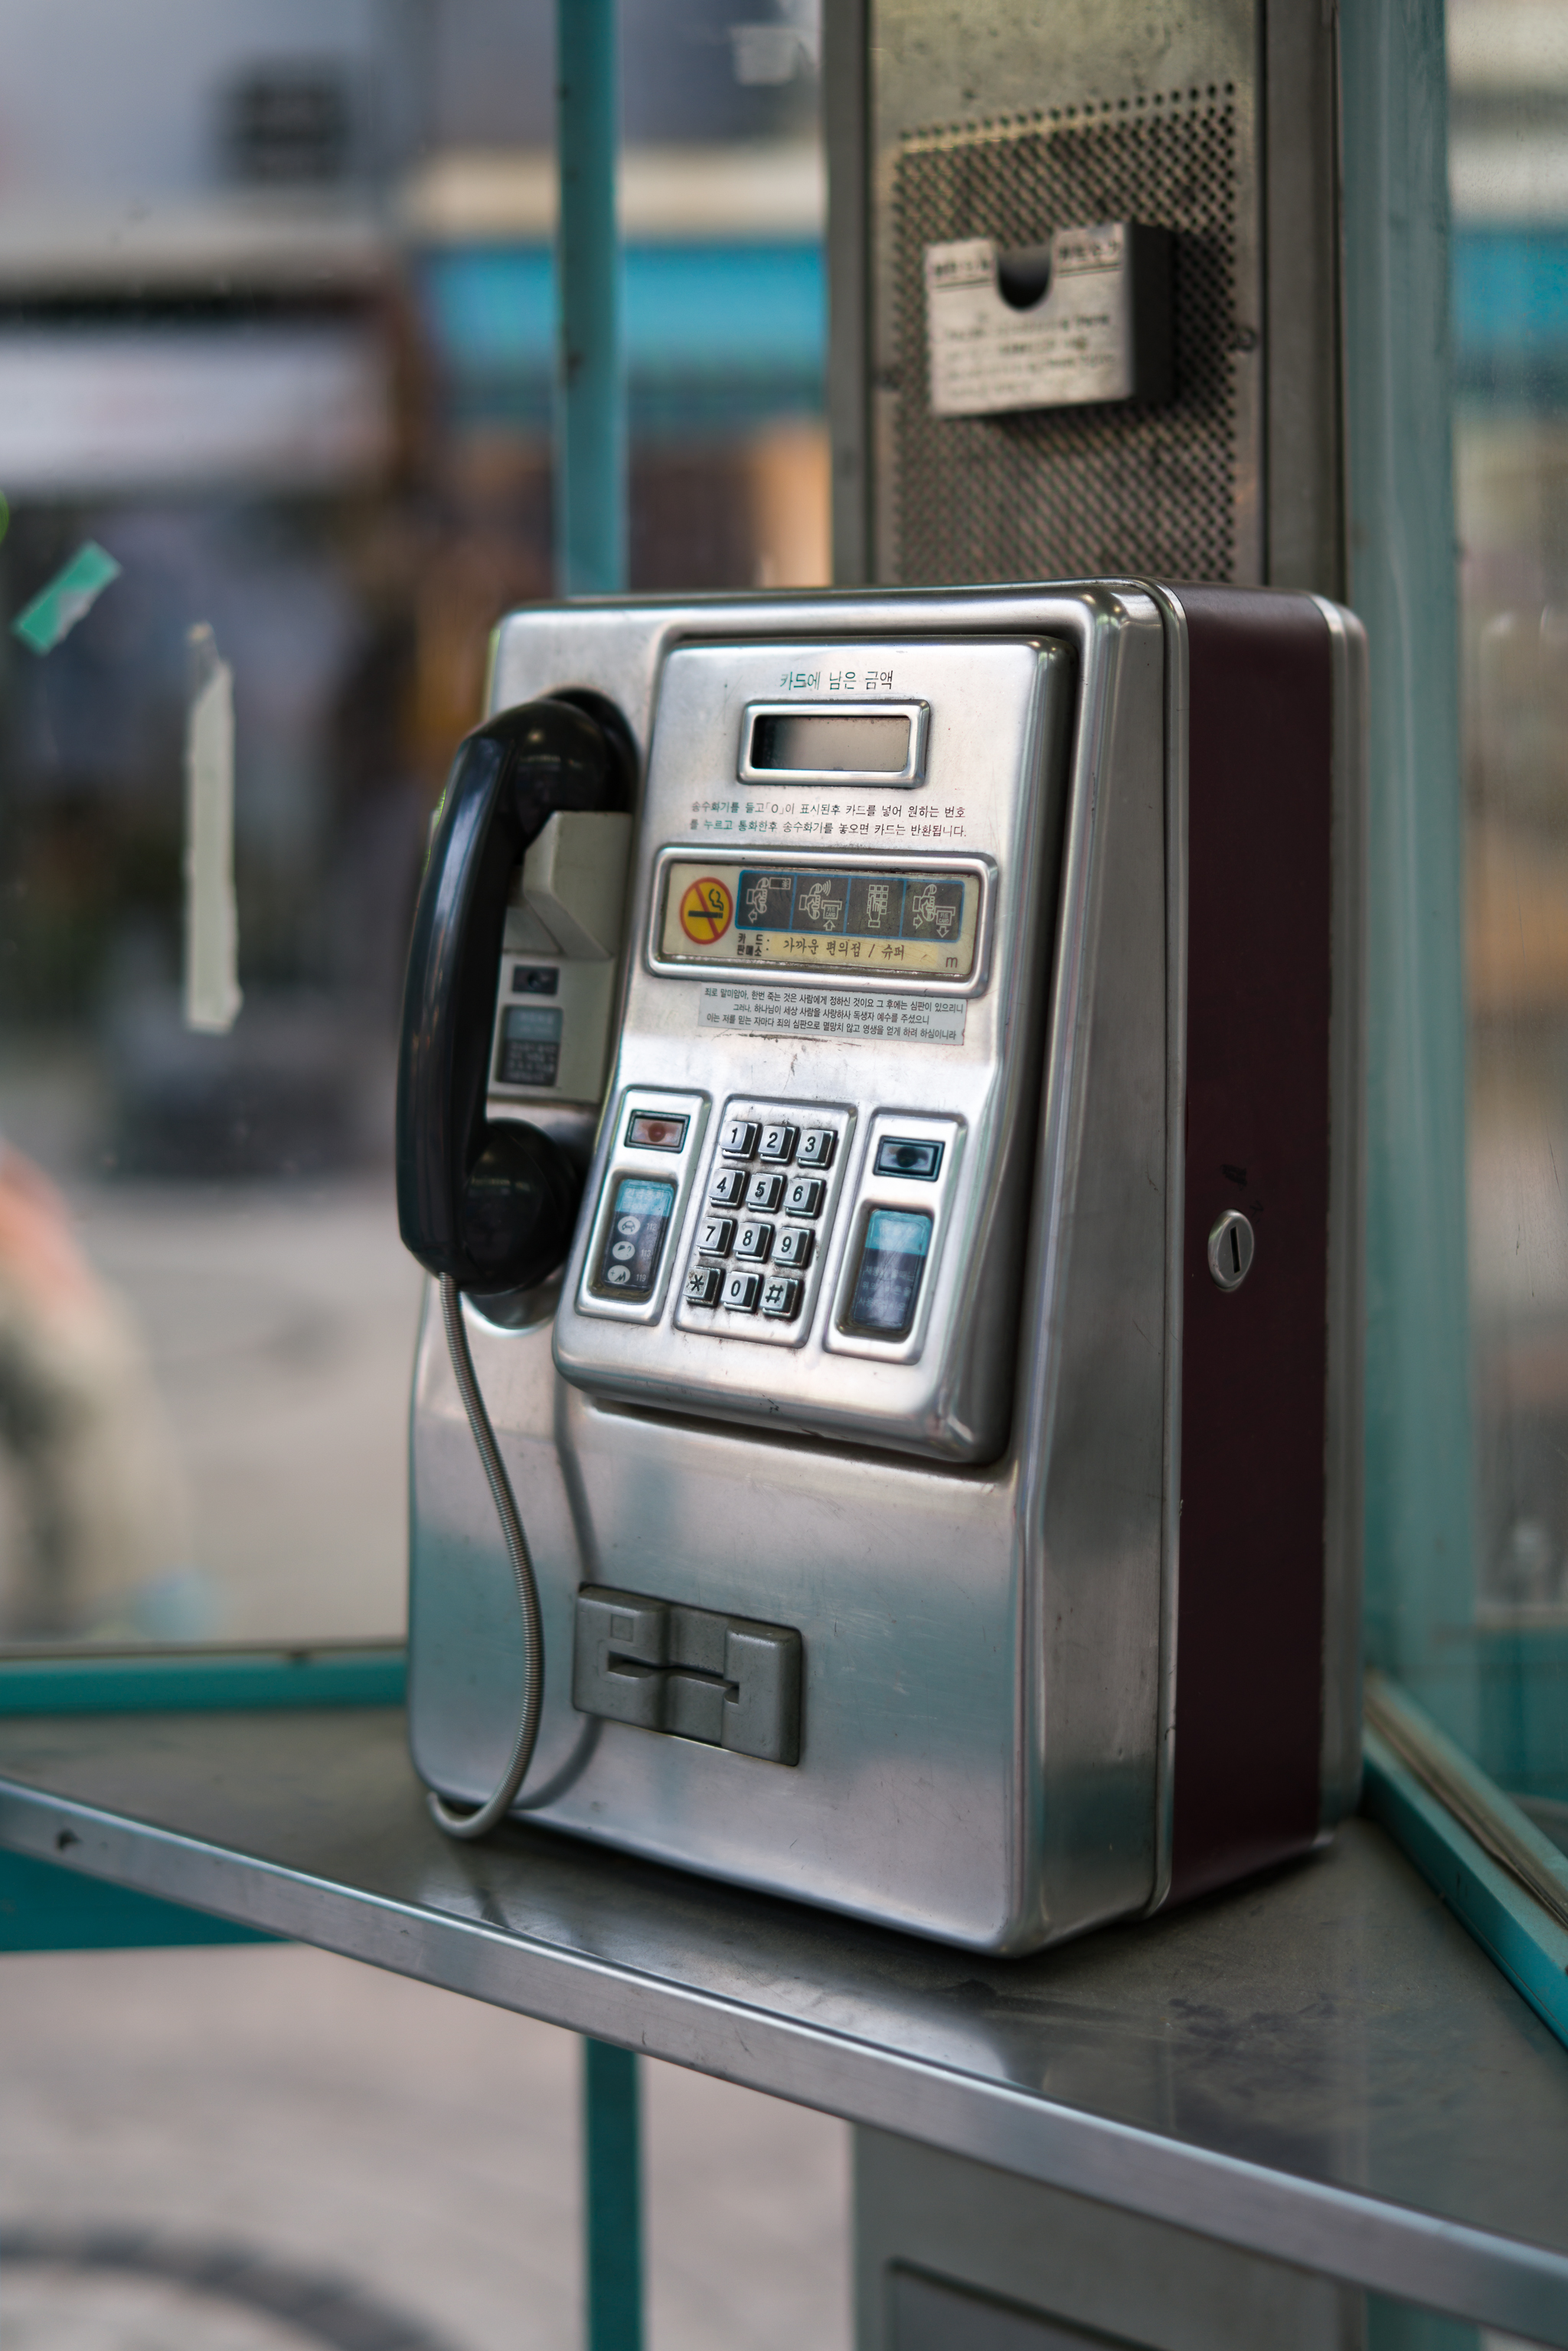 This kids is a phone booth. The ancient people would put money in these and make phone calls.